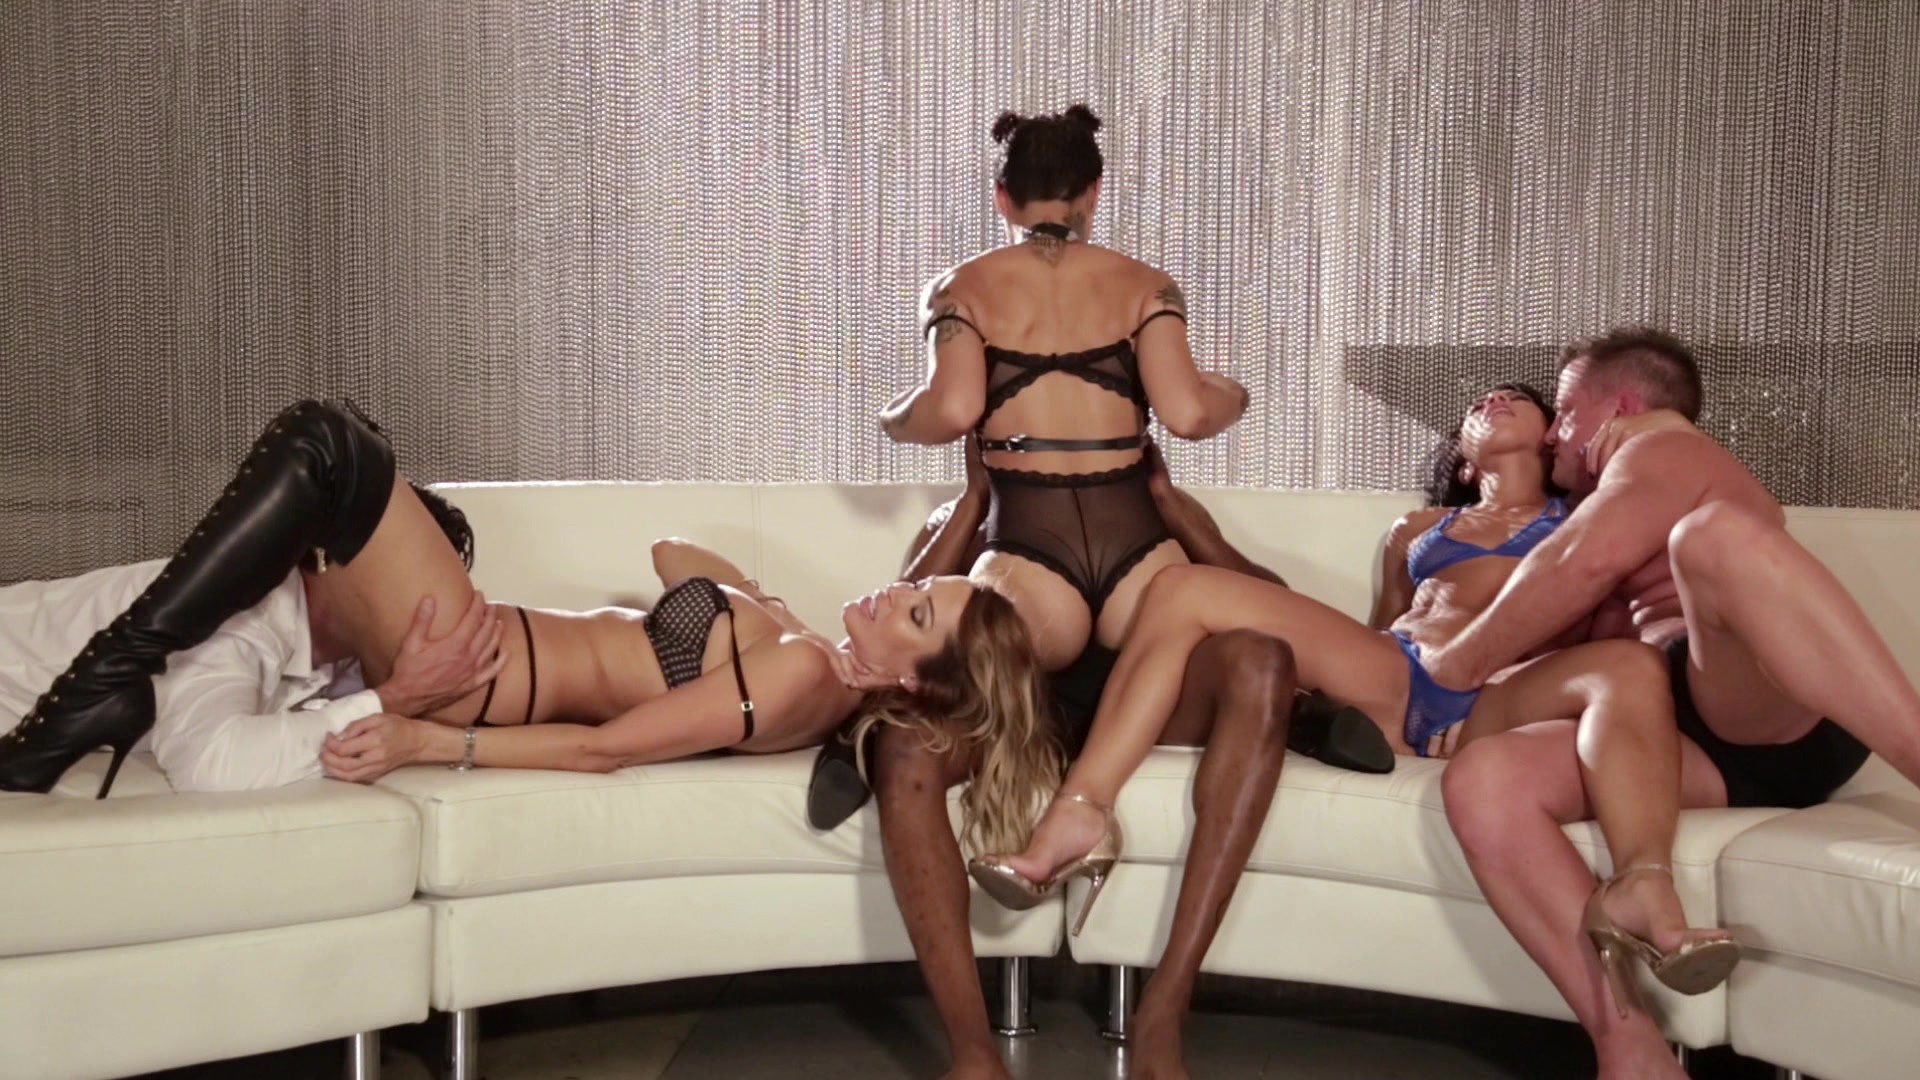 Scene with Jessica Drake, Morgan Lee and Honey Gold - image 6 out of 20